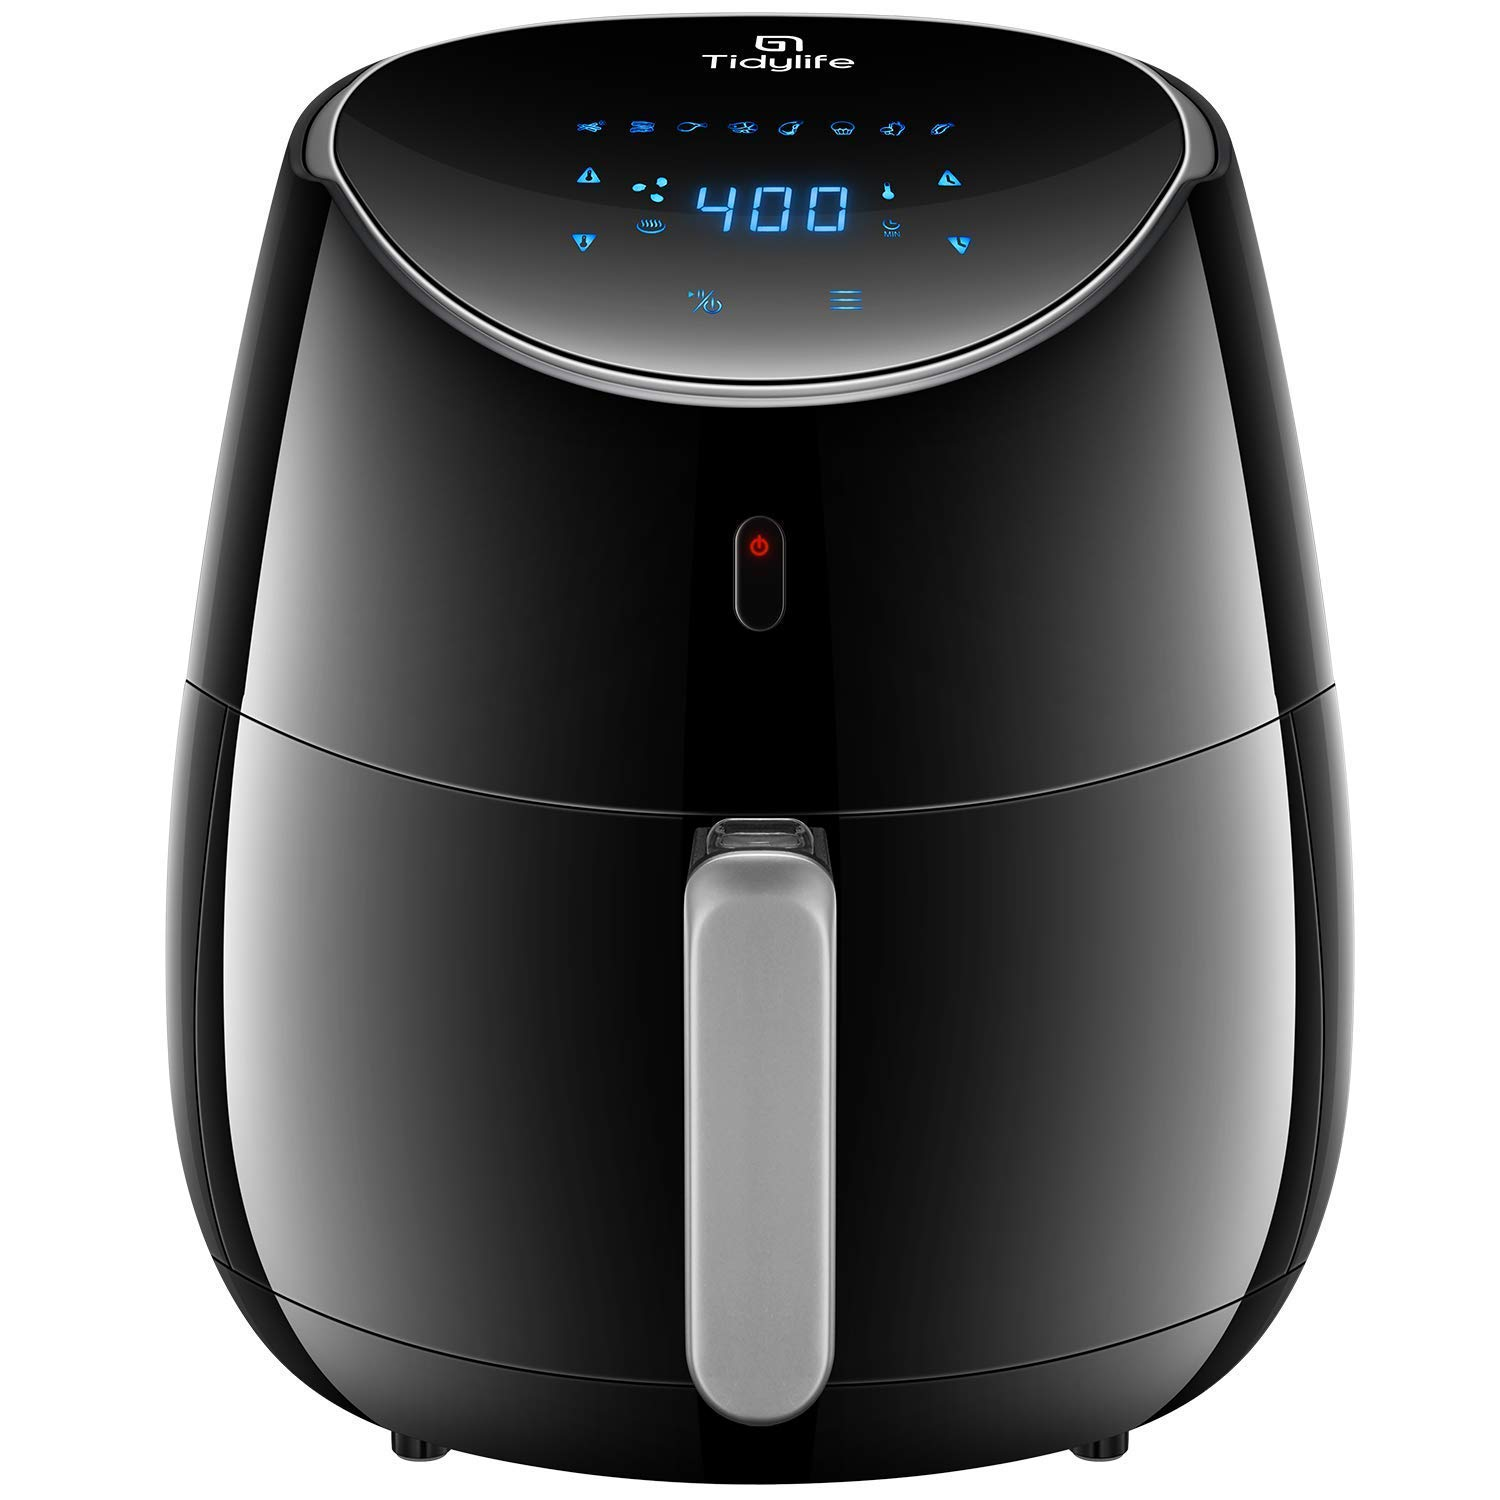 Tidylife Air Fryer XL, 1700W 5.8-Quarts 8-in-1 Oil Free Air Cooker with Cookbook(over 32 recipes), Smart Touchscreen, Recipes, Auto Shut Off, Black Fryer (5.8QT)